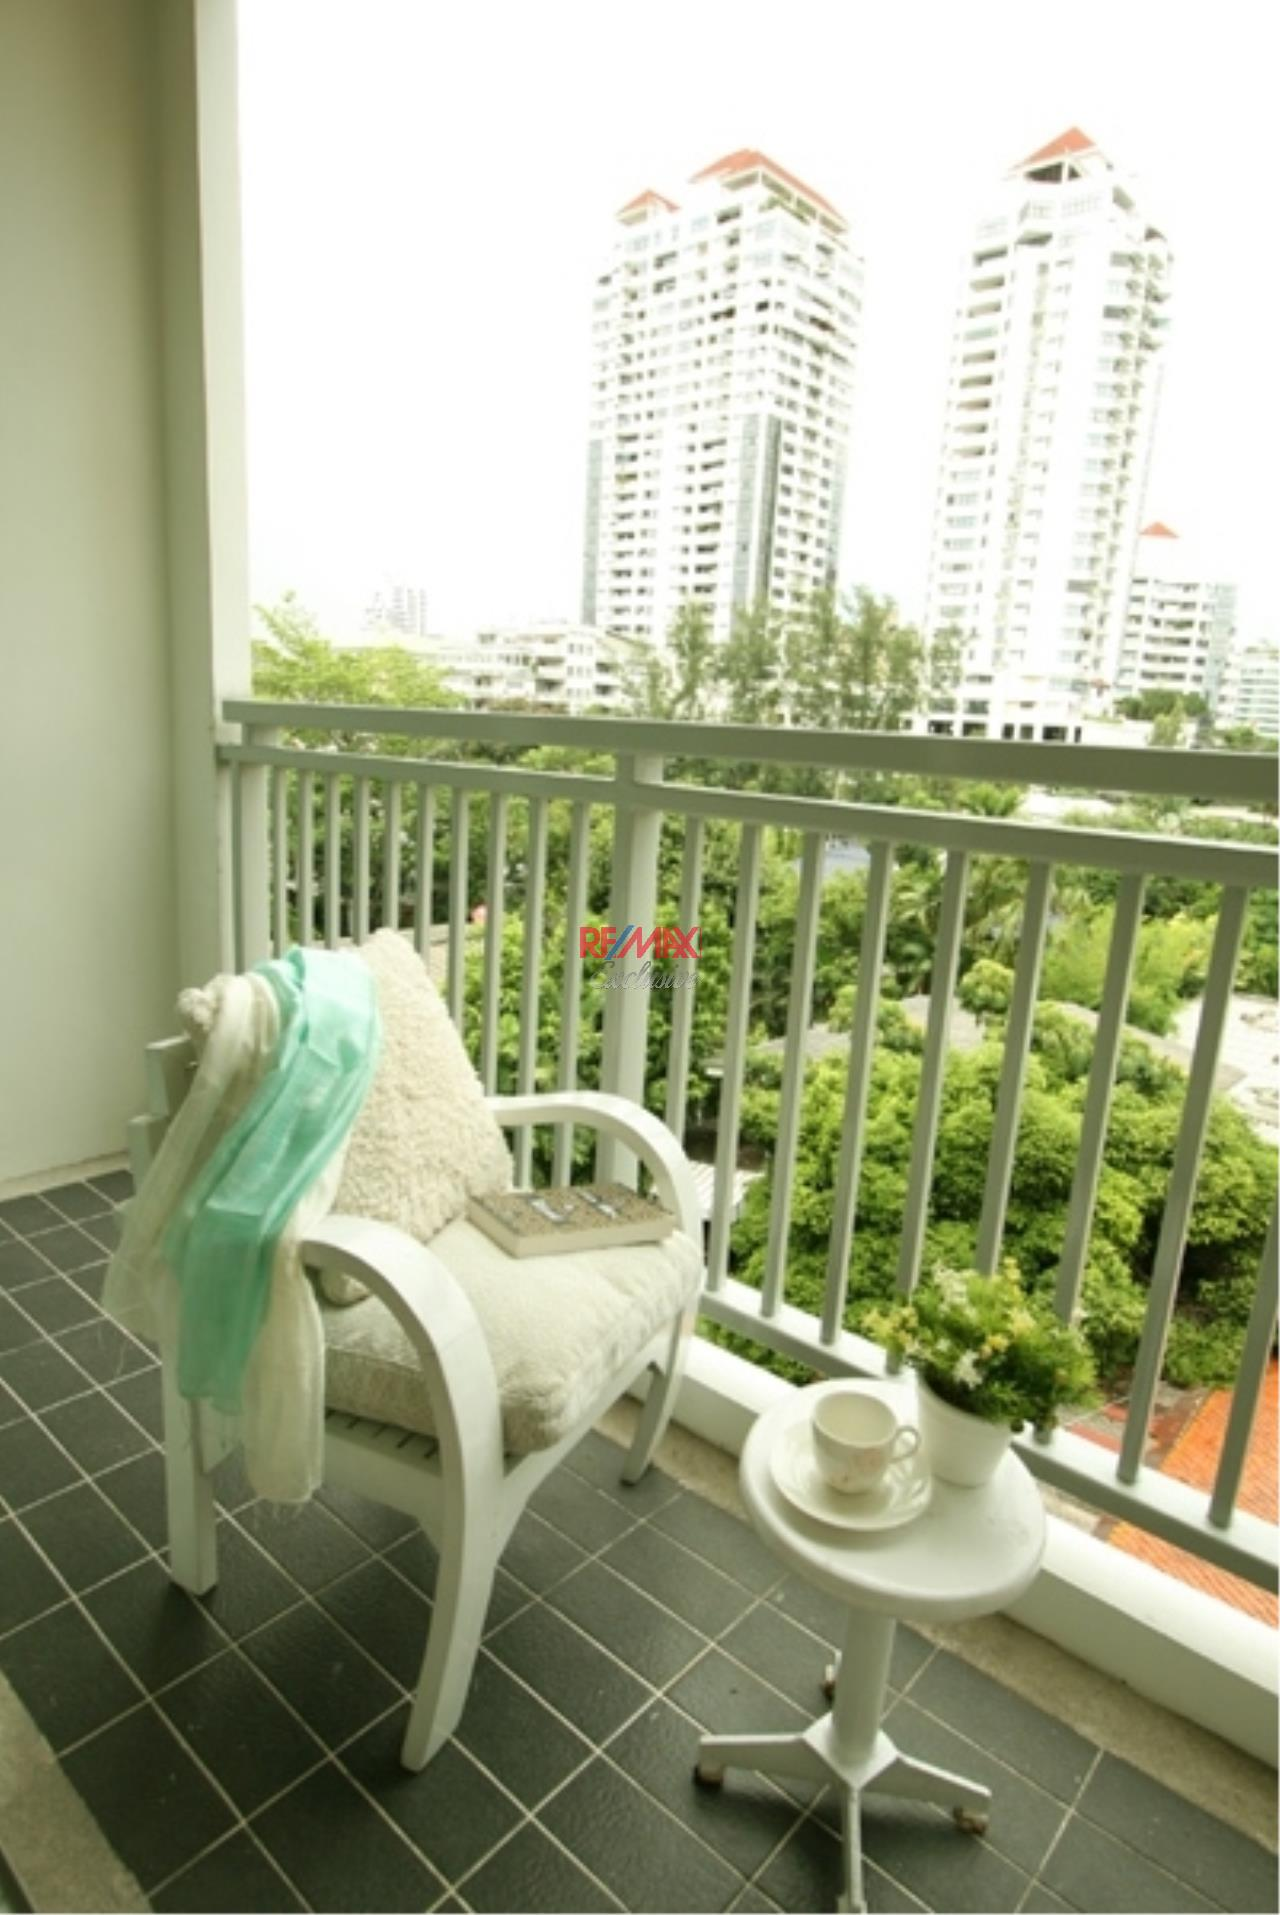 RE/MAX Exclusive Agency's 49 Plus 2 Condo 2 Bedrooms 81 Sqm For Sale 8,800,000 THB 9